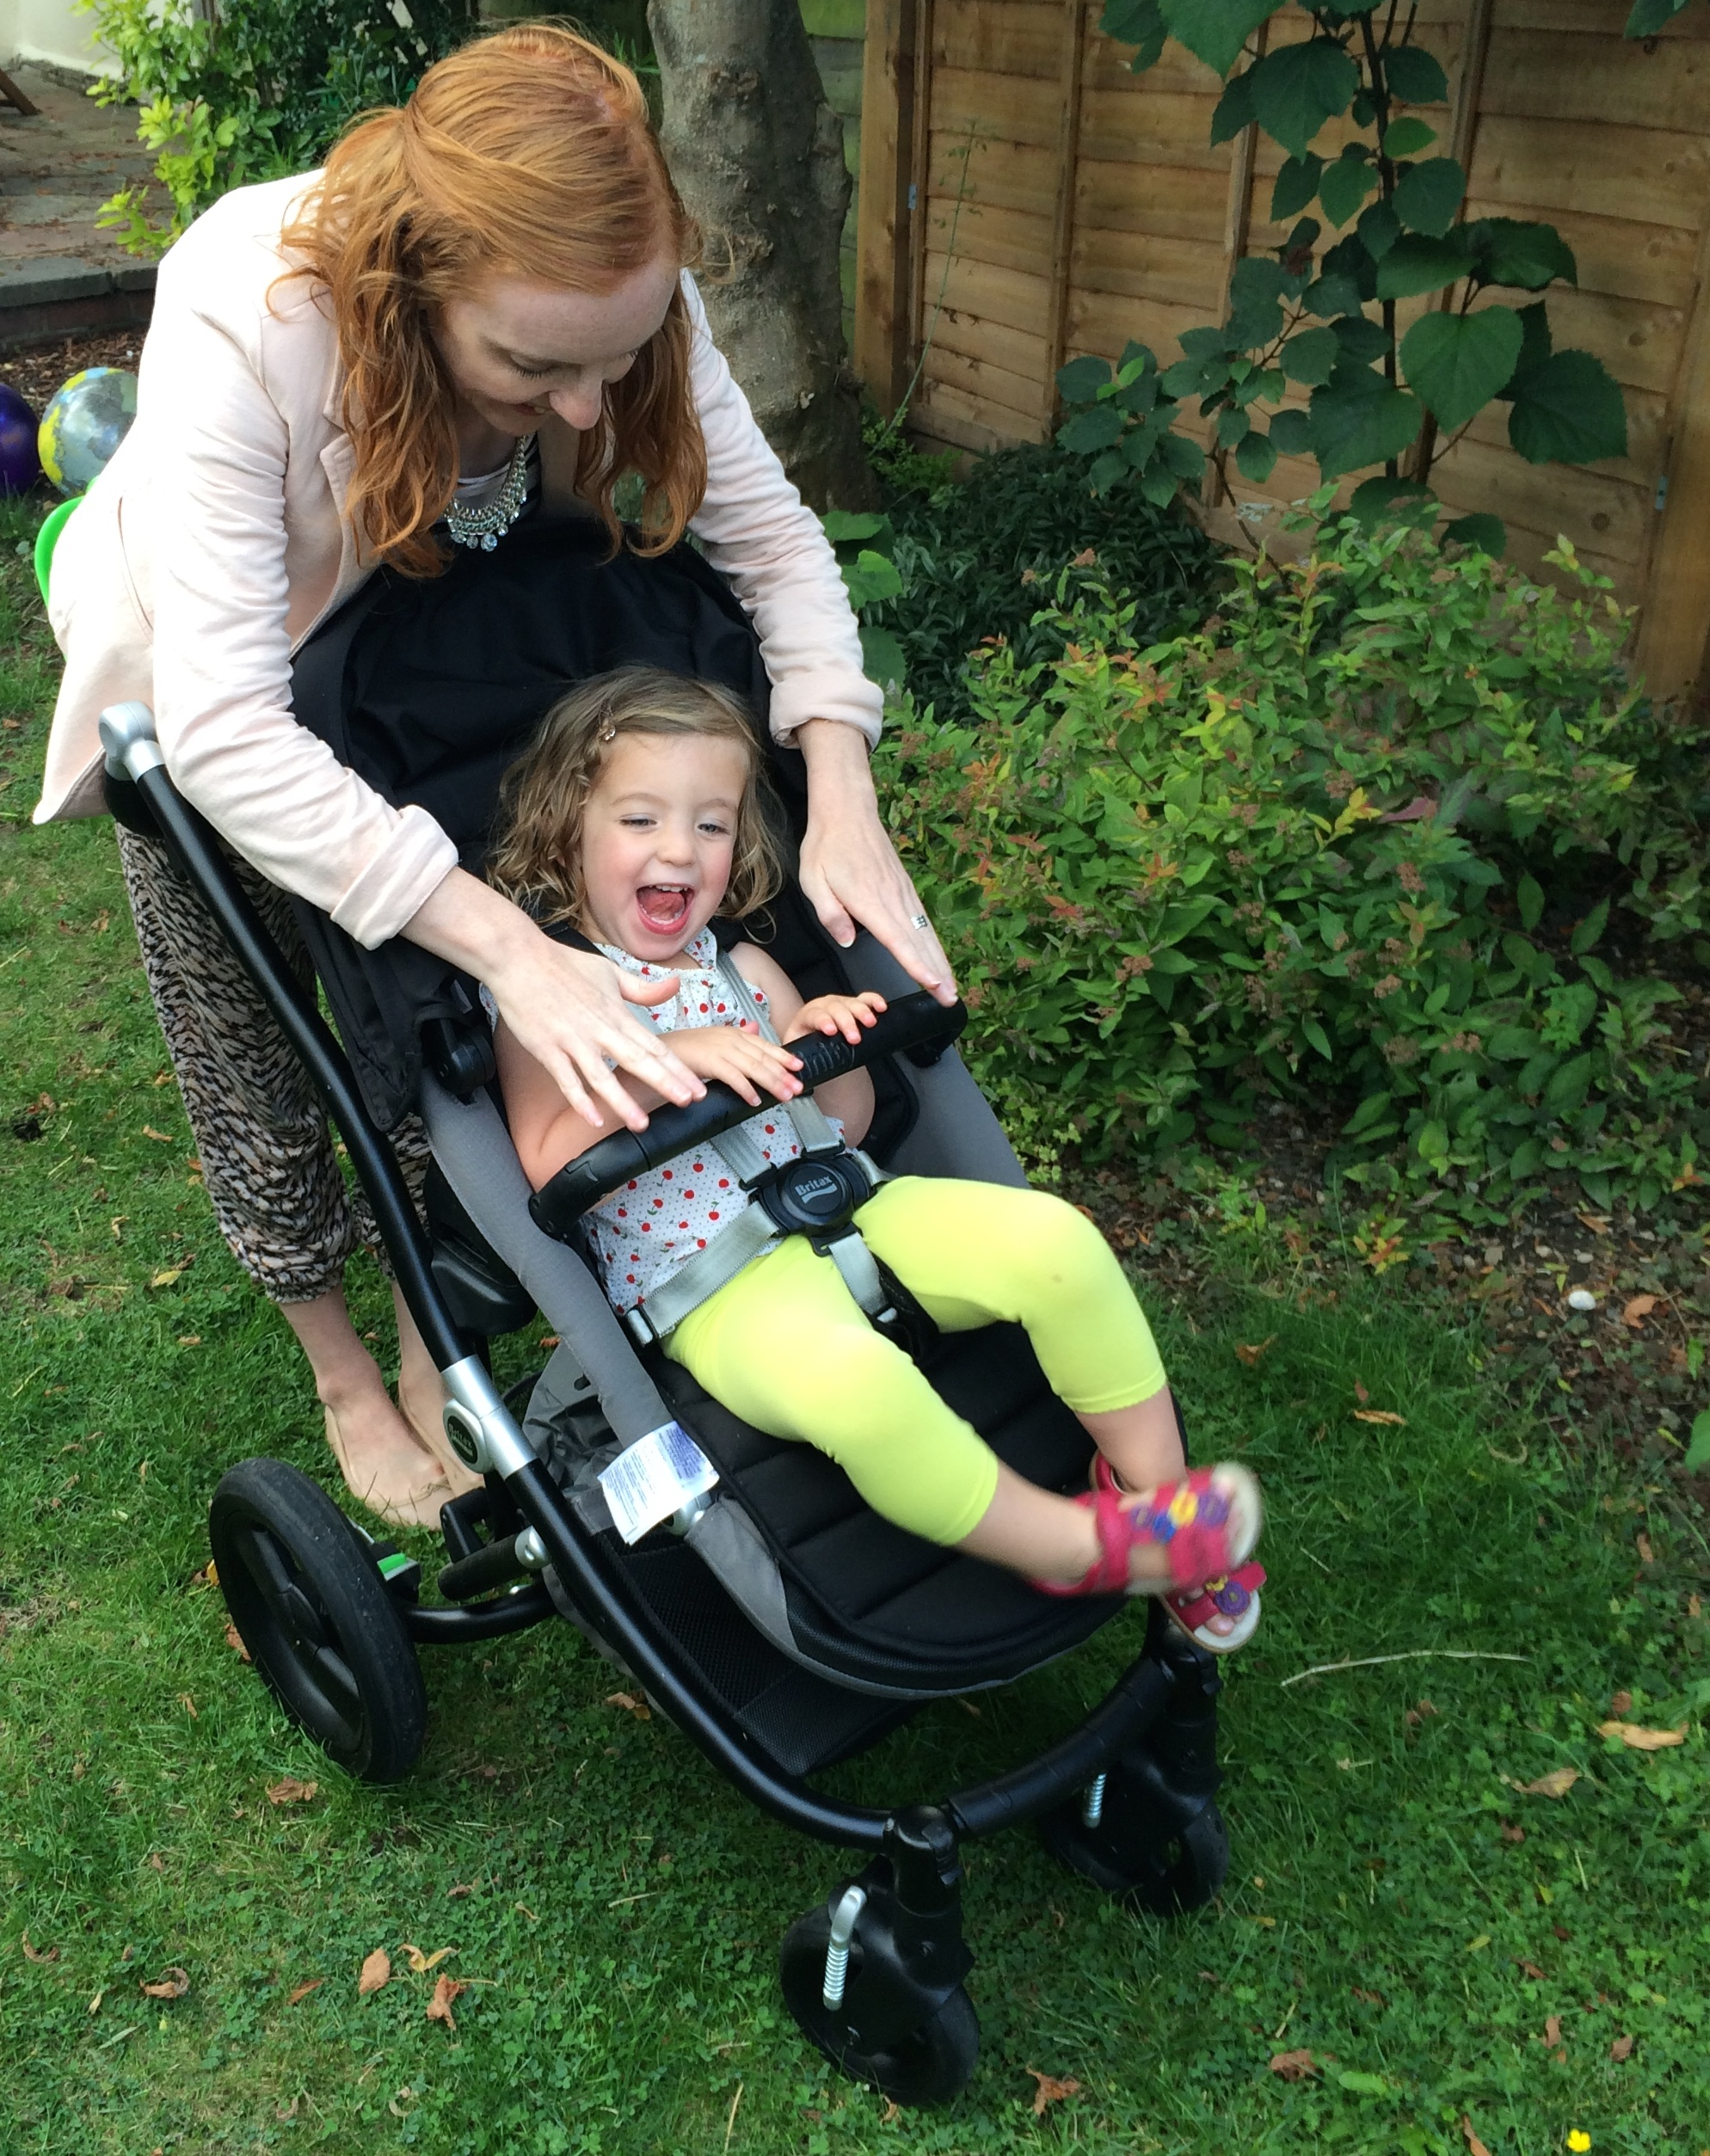 Review of the Britax travel system